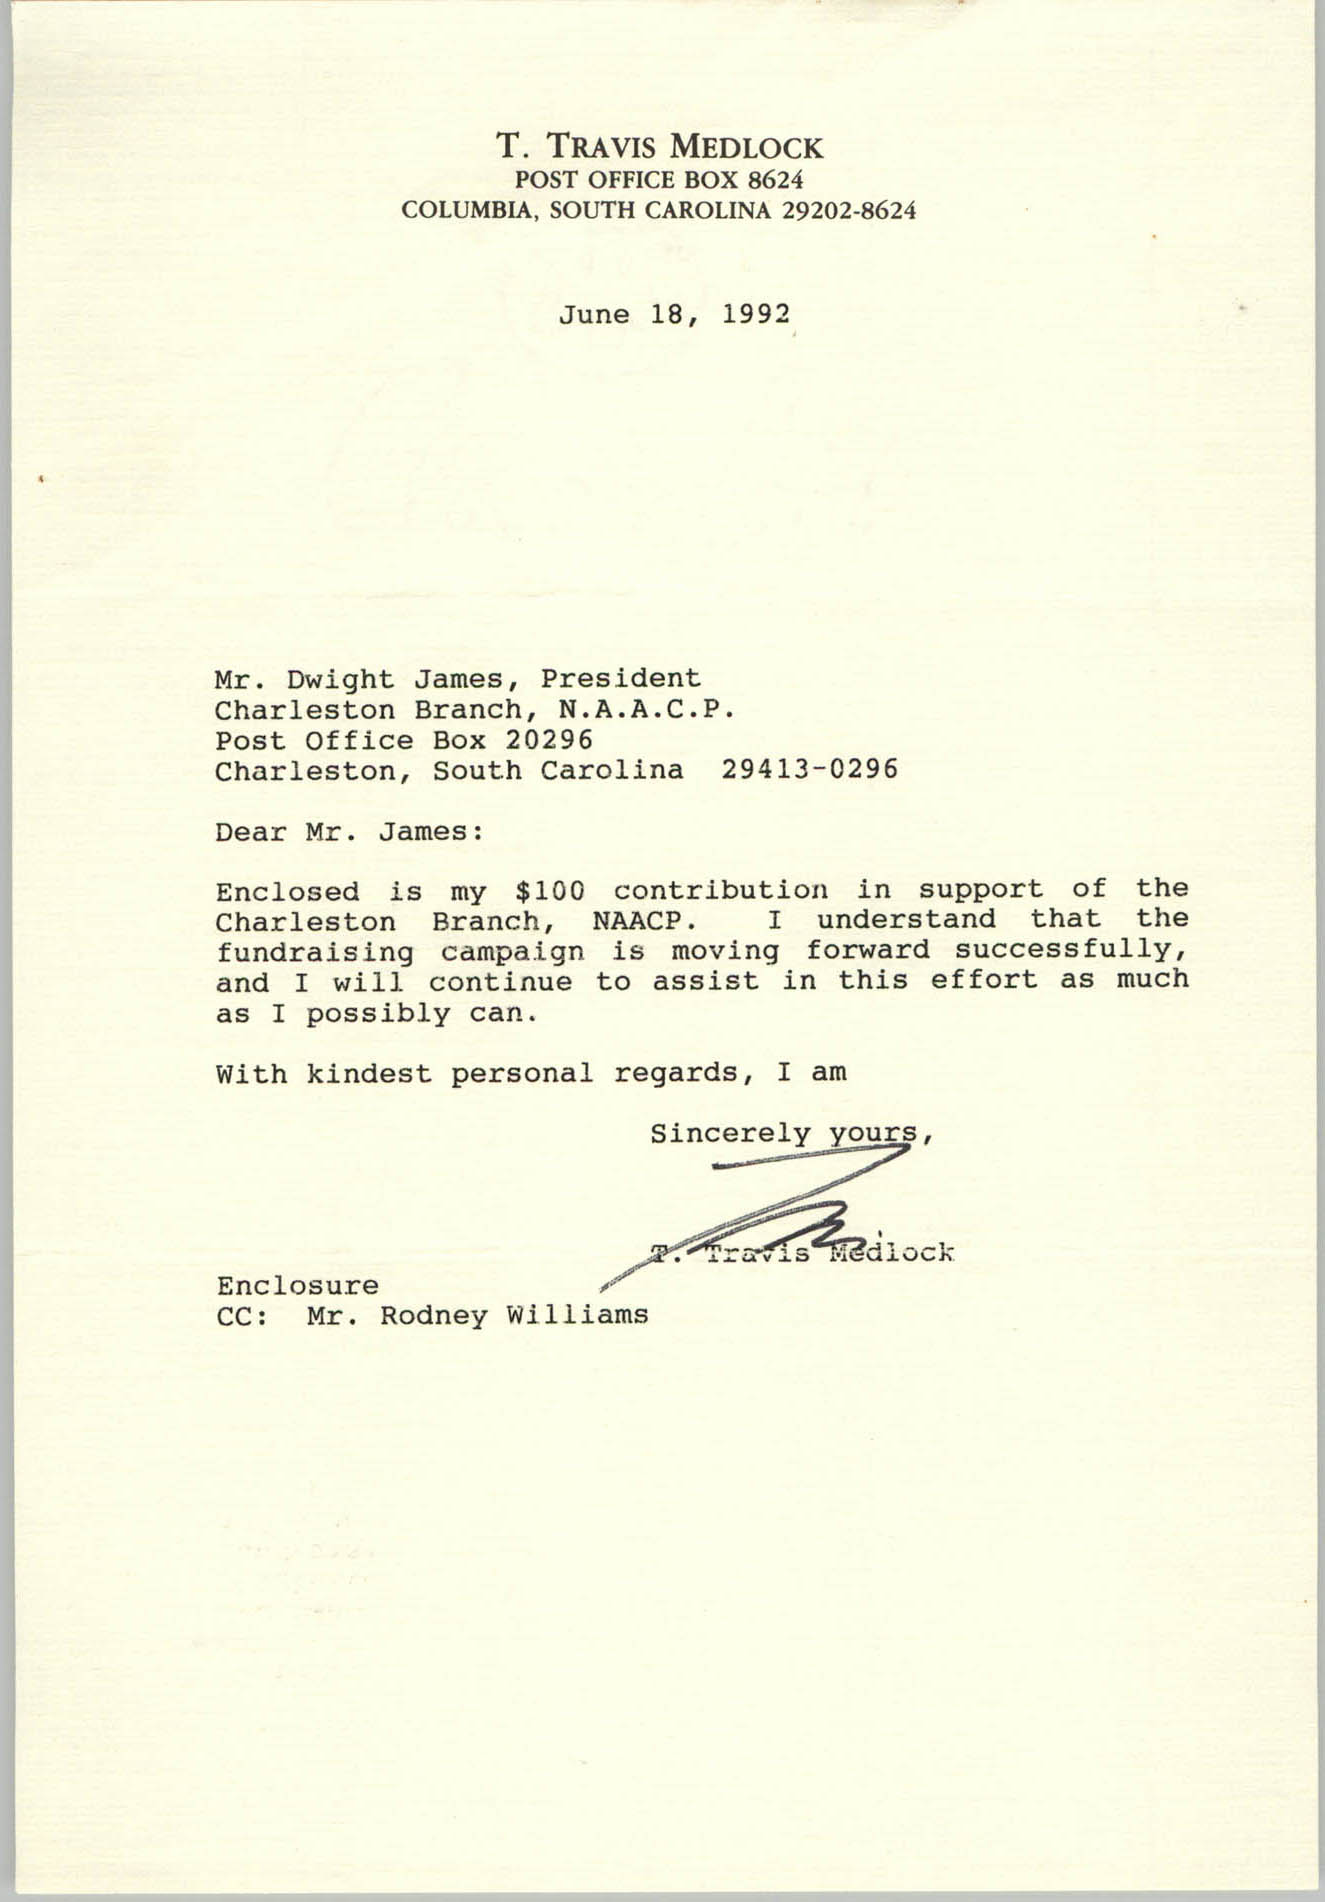 Letter from T. Travis Medlock to Dwight James, June 18, 1992